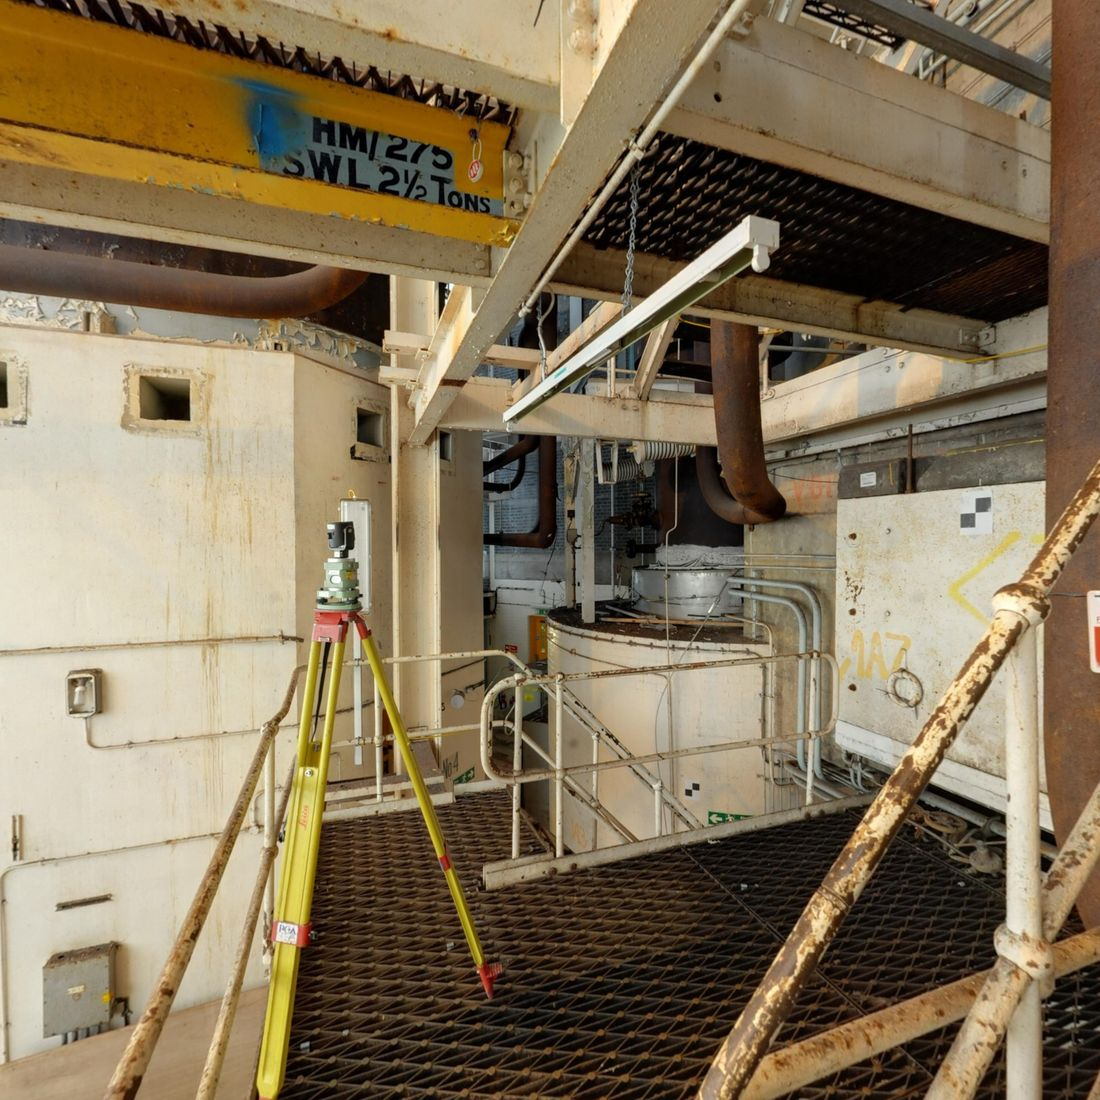 Infrastructure Hunterston Nuclear Laser Scanning